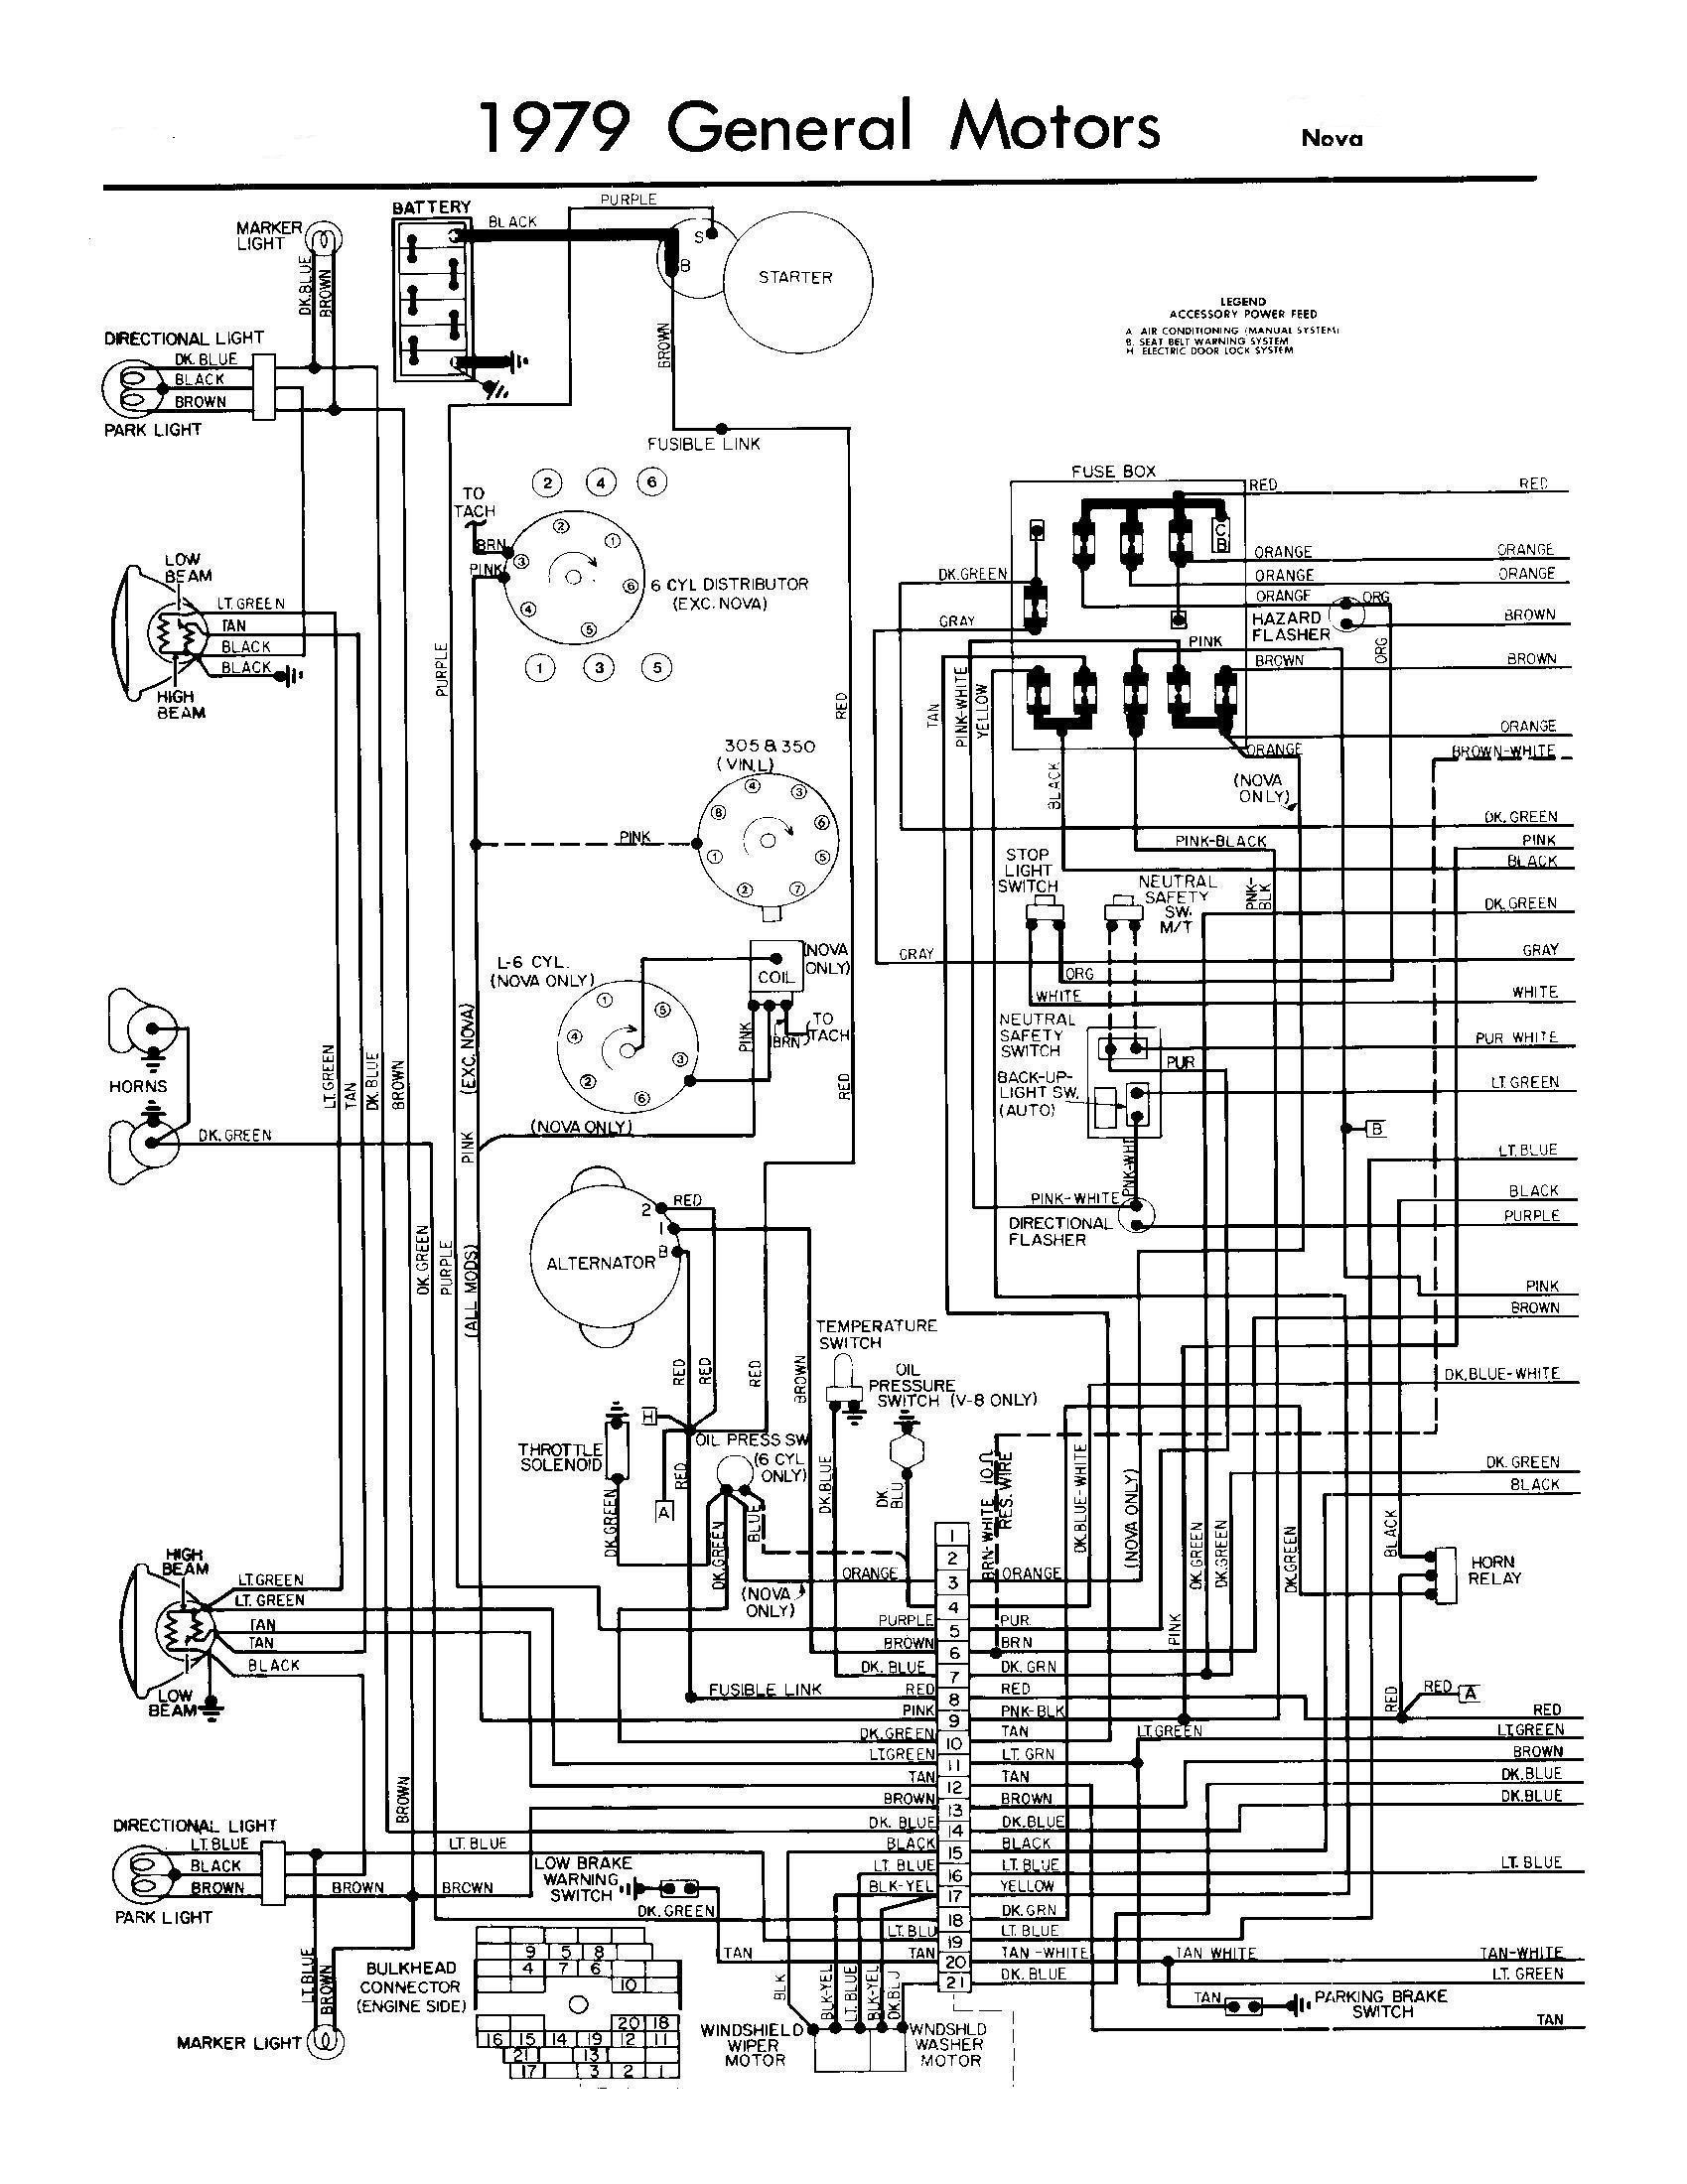 1979 chevy wiring diagram wiring diagram detailed1979 c10 wiring diagram 20 lwe zionsnowboards de \\u2022 1976 chevy wiring diagram 1979 chevy wiring diagram